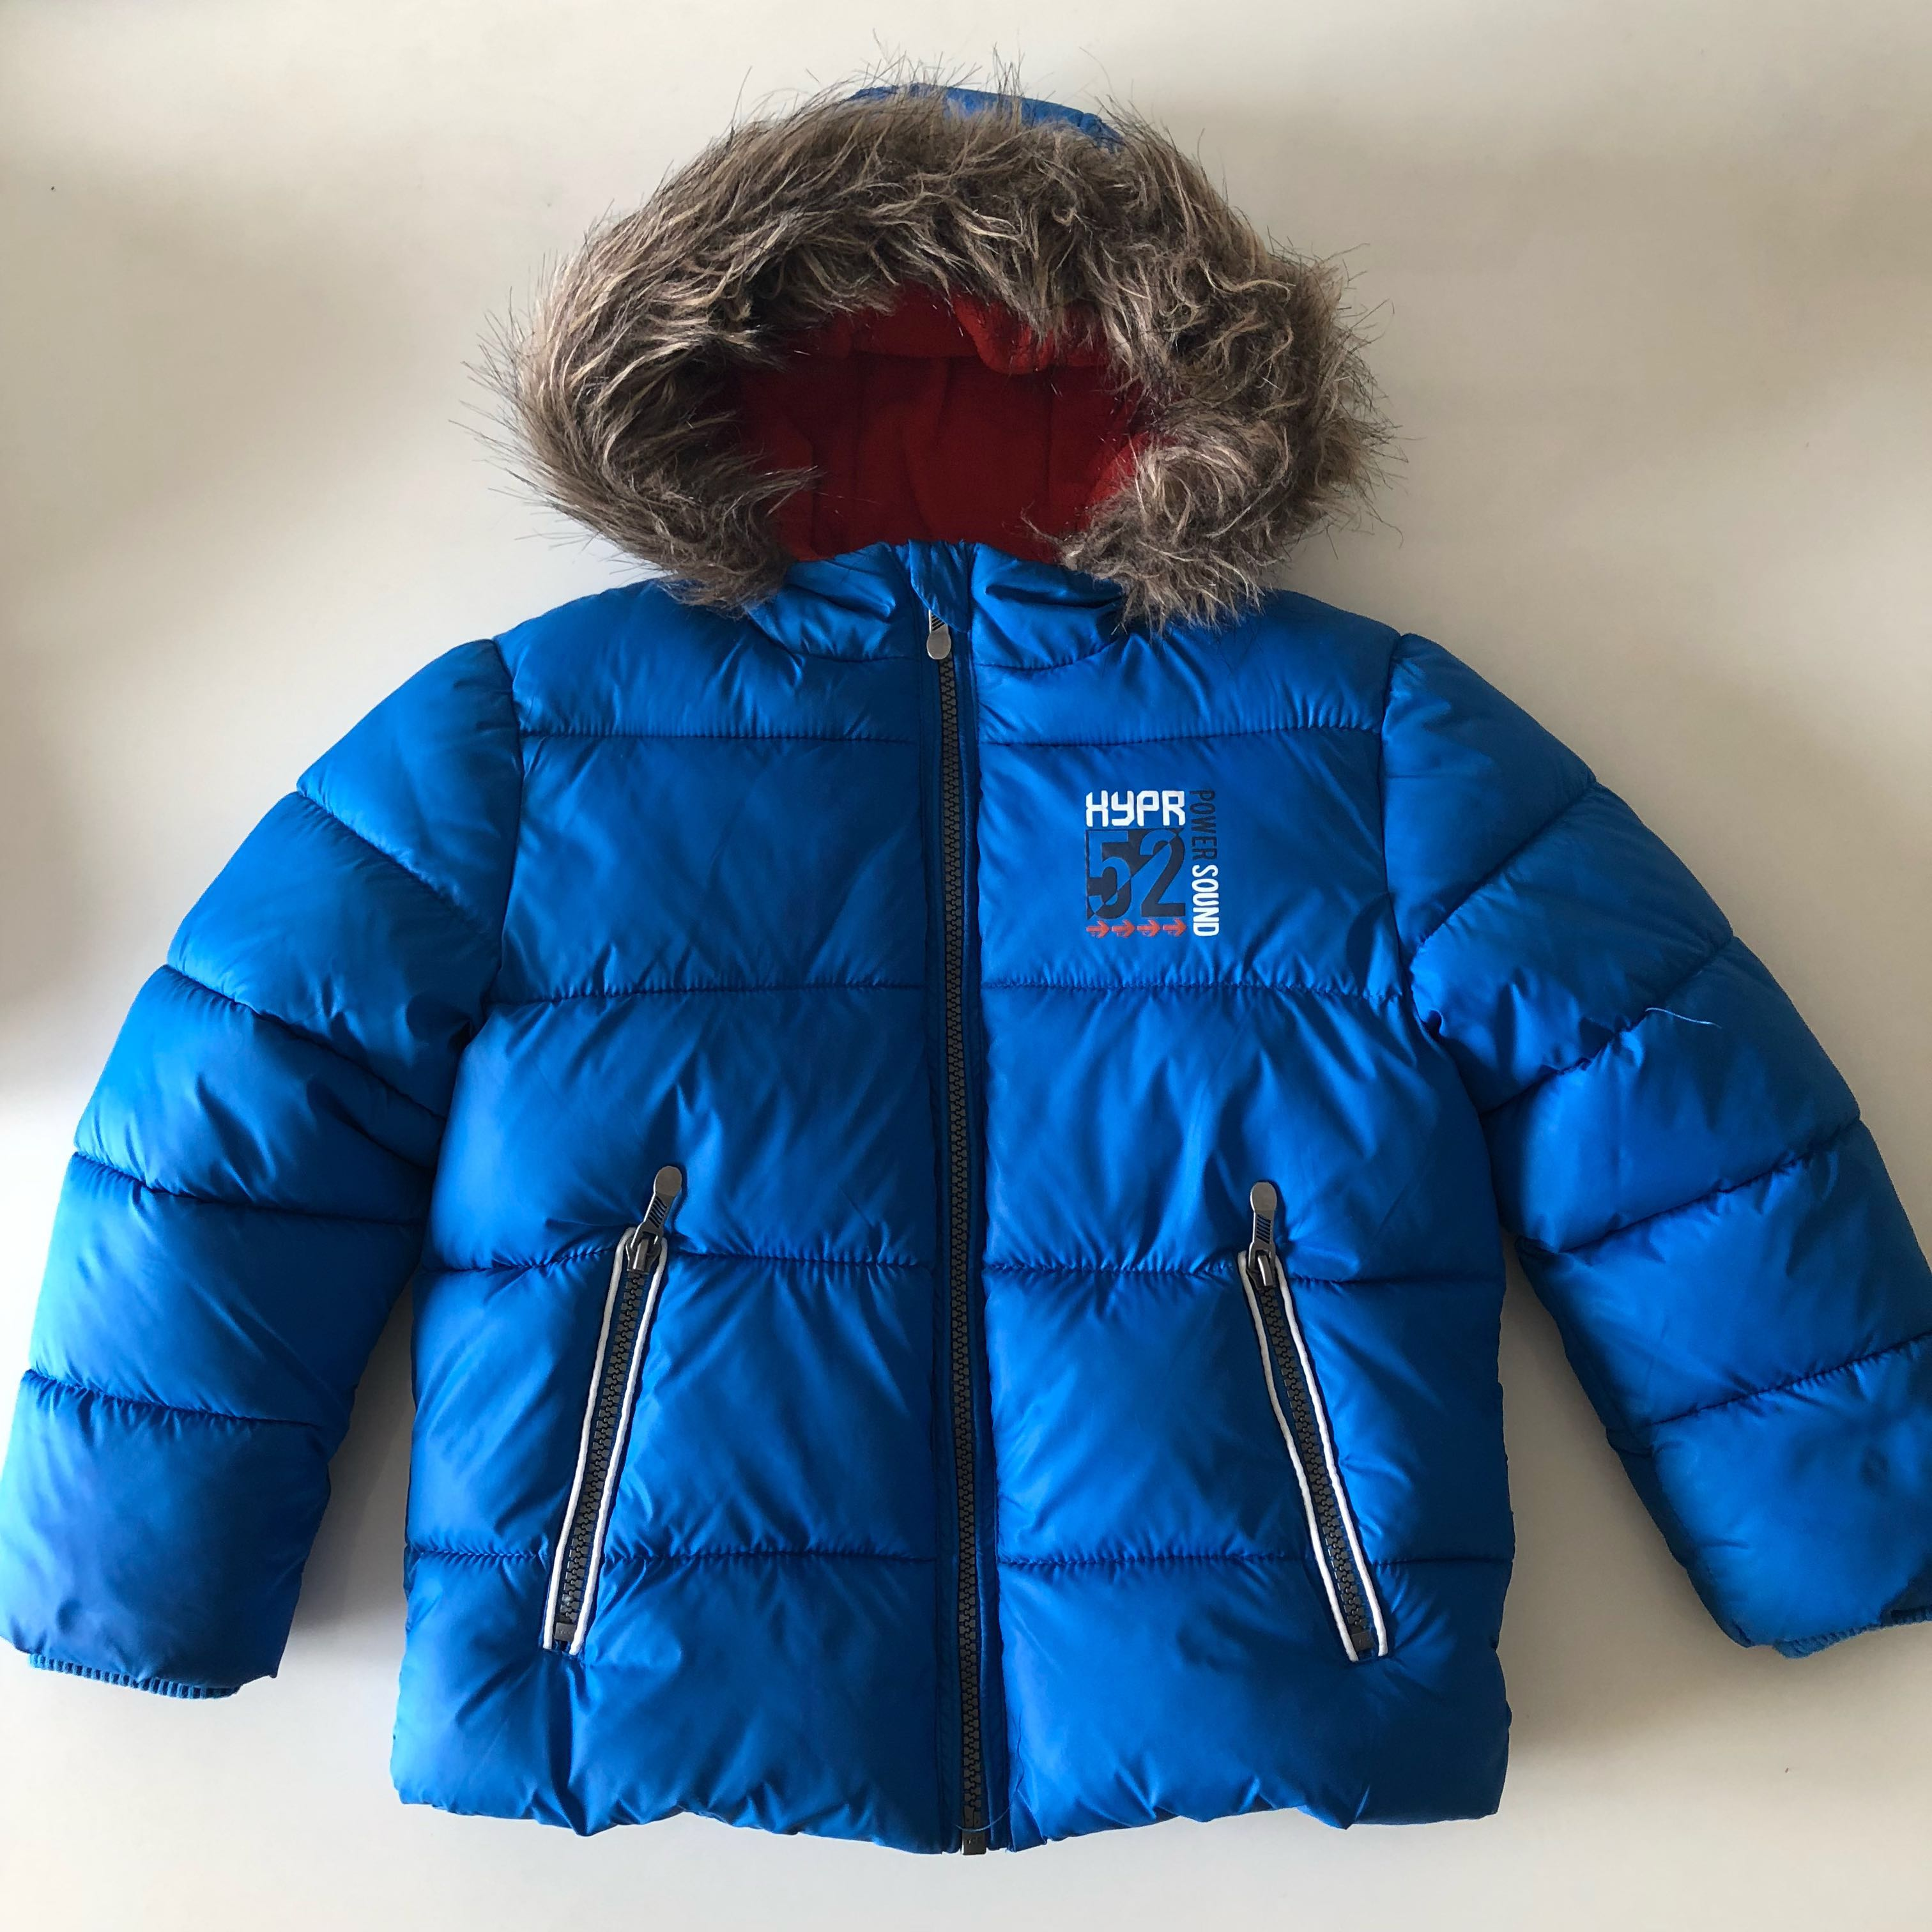 039db858 Kids Winter Jacket, Babies & Kids, Boys' Apparel, 1 to 3 Years on ...